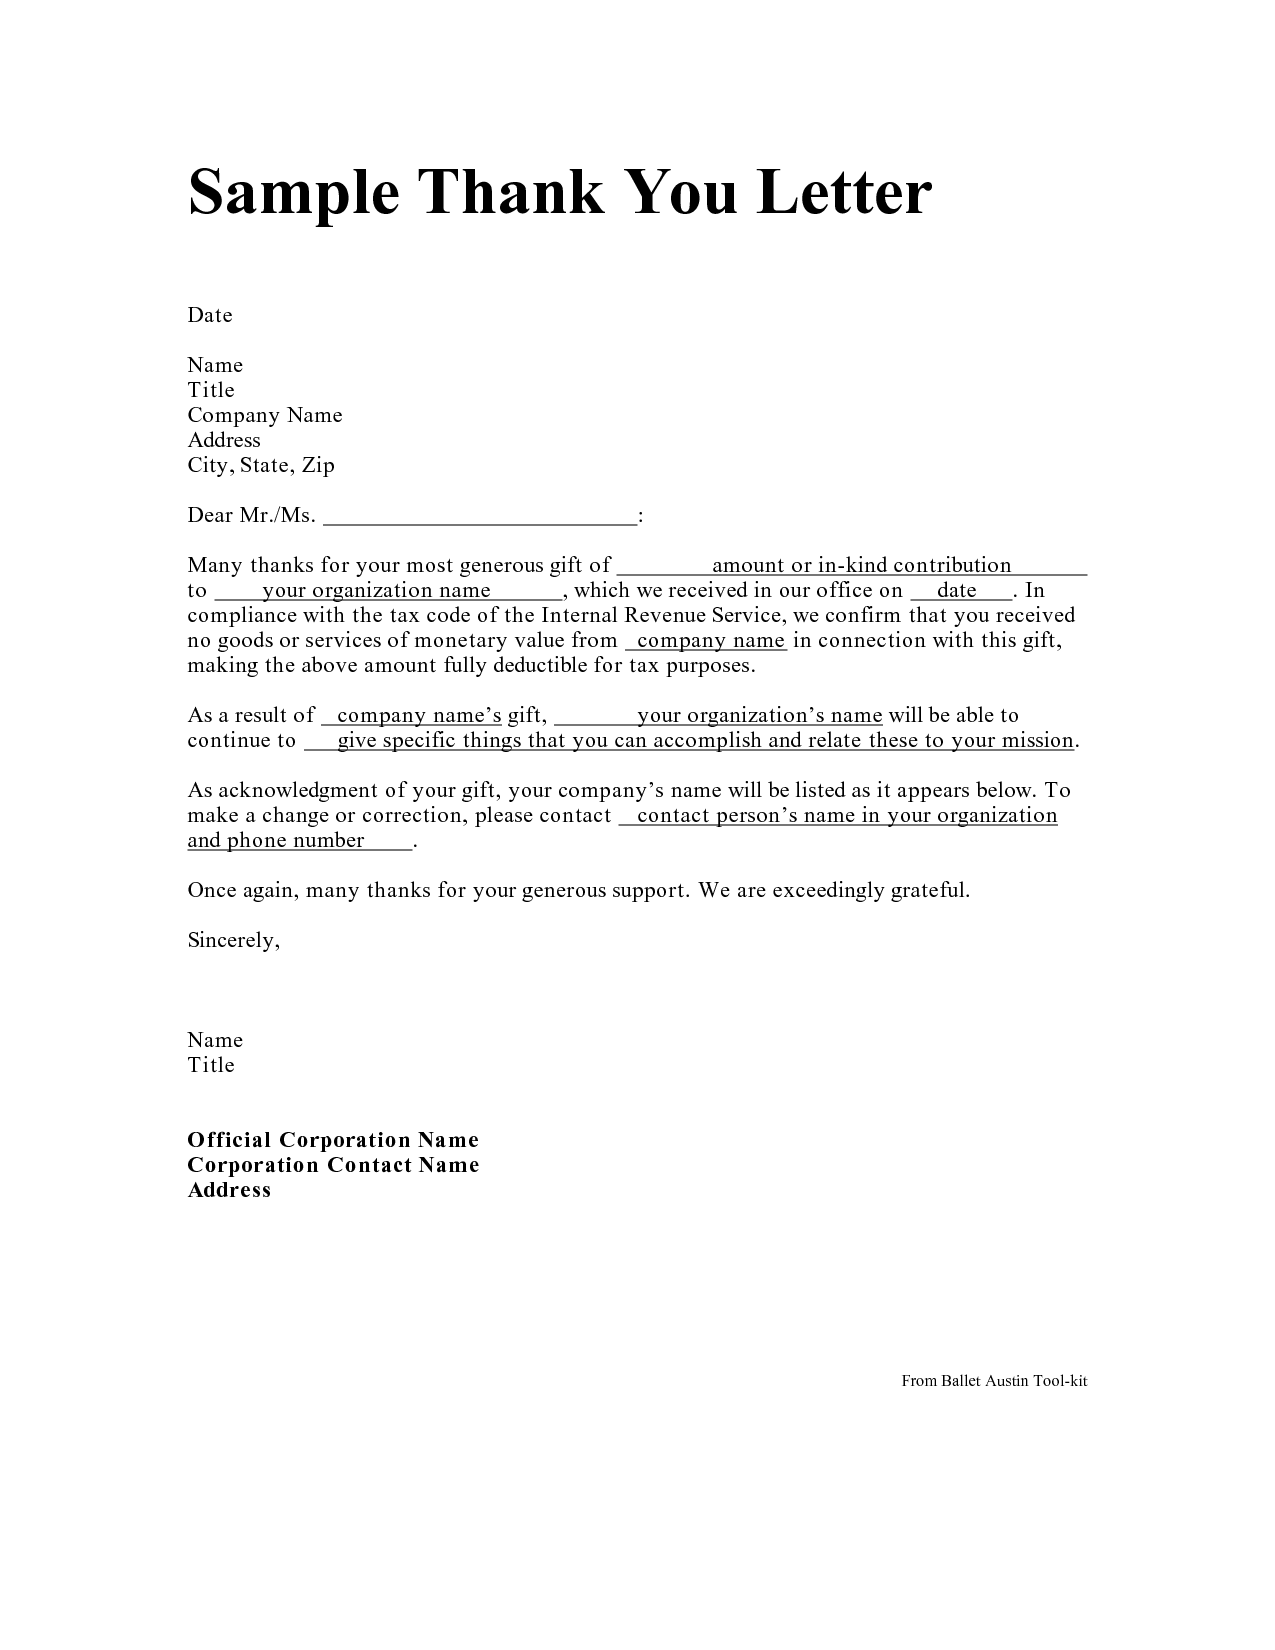 kindergarten teacher appreciation letter sample cover letter kindergarten teacher appreciation letter sample letter c coloring pages letters of the alphabet activities you letter